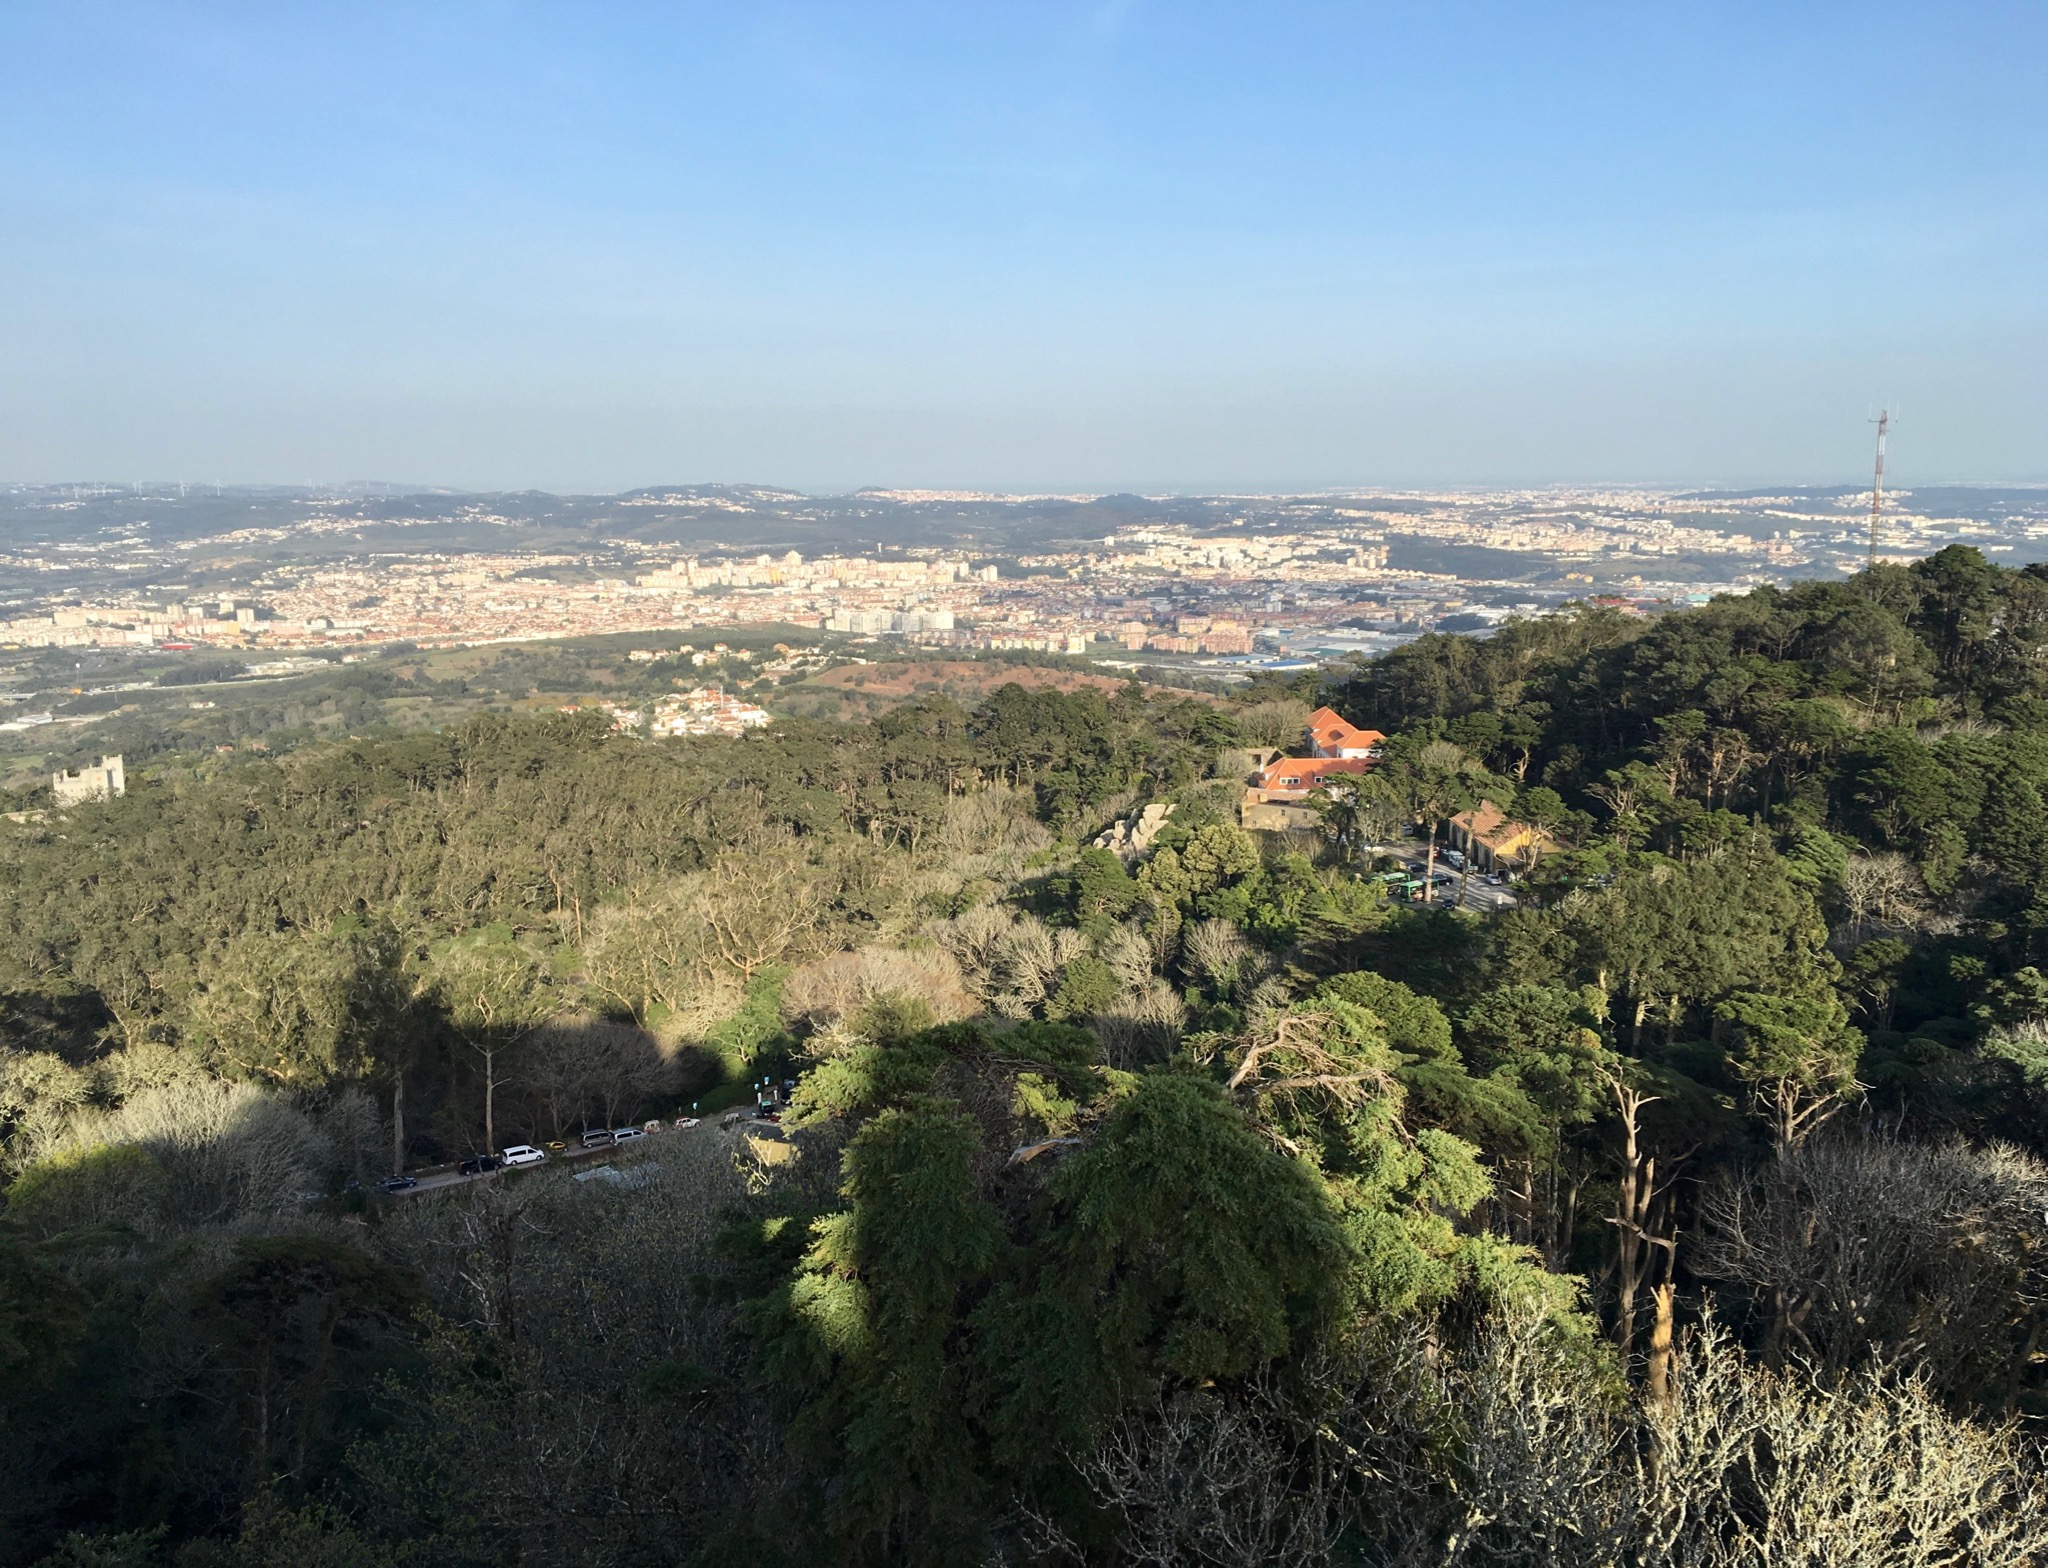 Visiting the Palace of Pena in Sintra